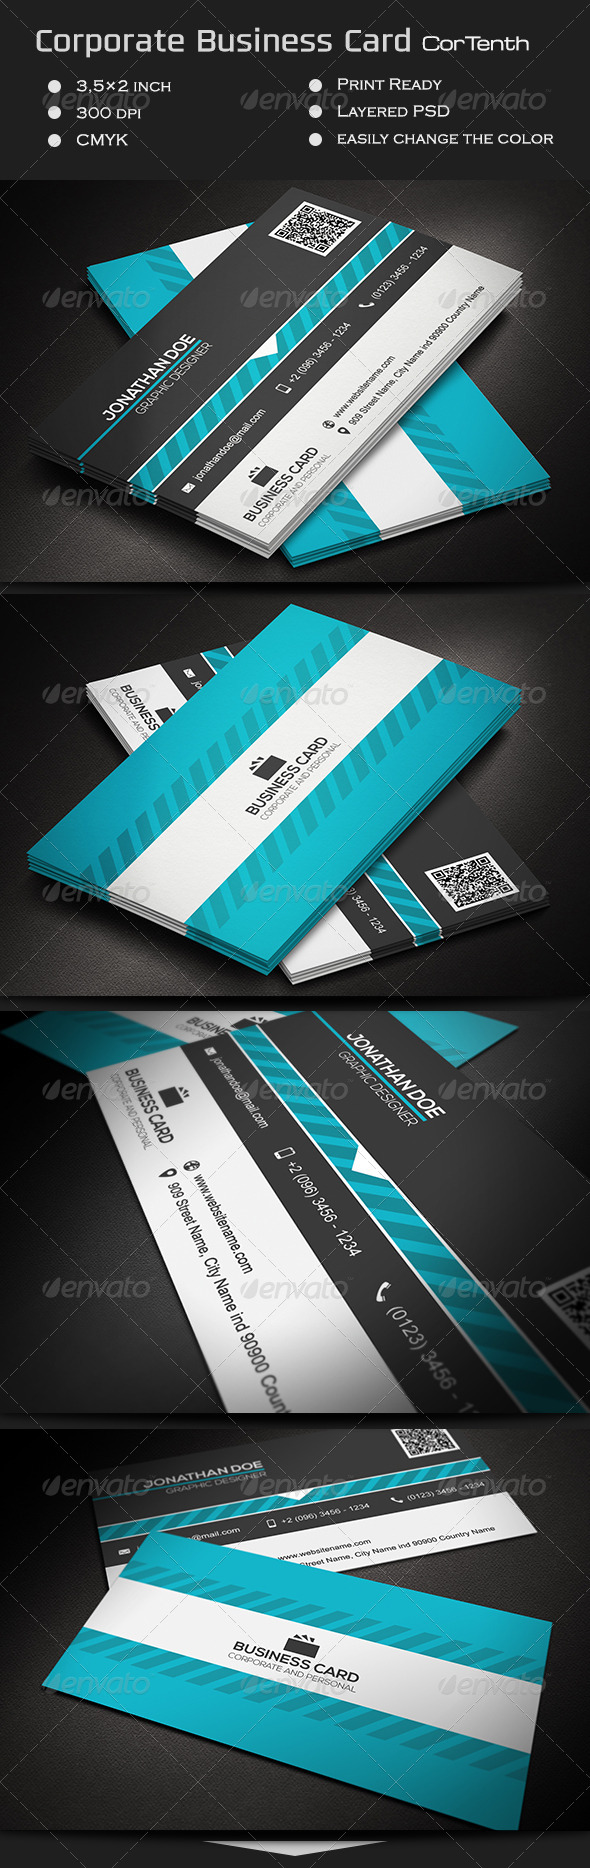 GraphicRiver Corporate Business Card CorTenth 7286096